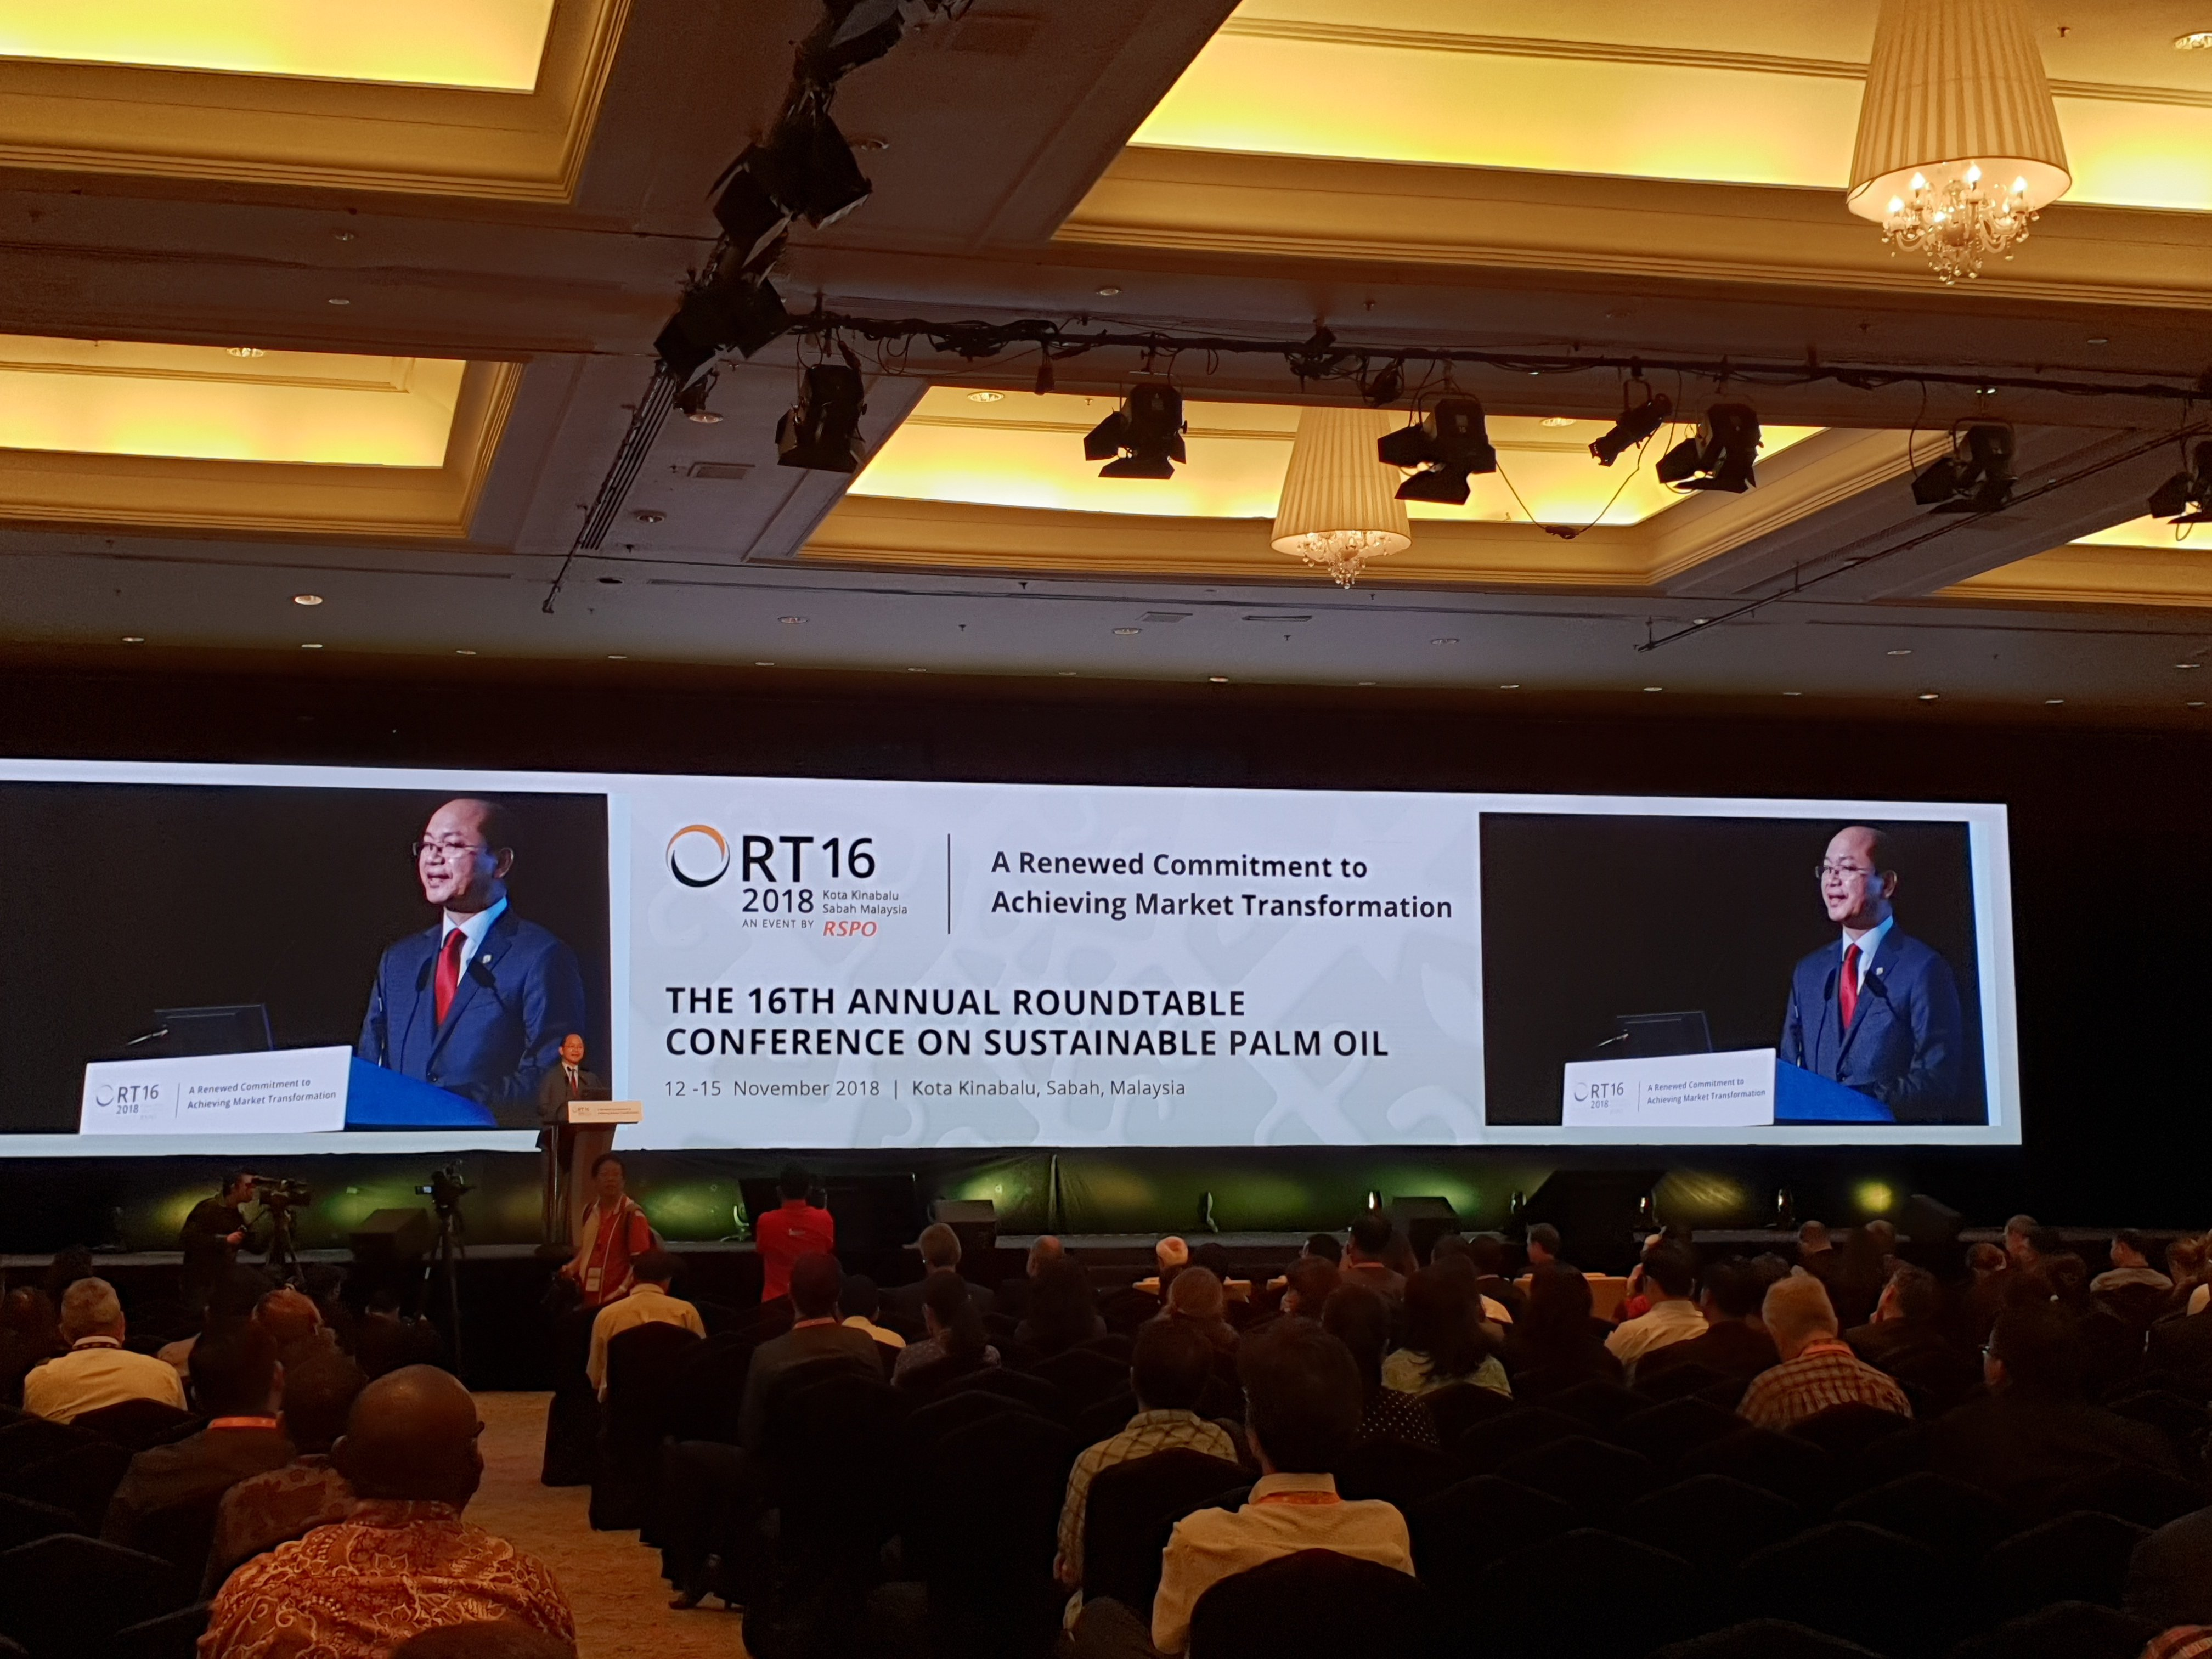 16th Annual Roundtable Conference on Sustainable Palm Oil (RT16)